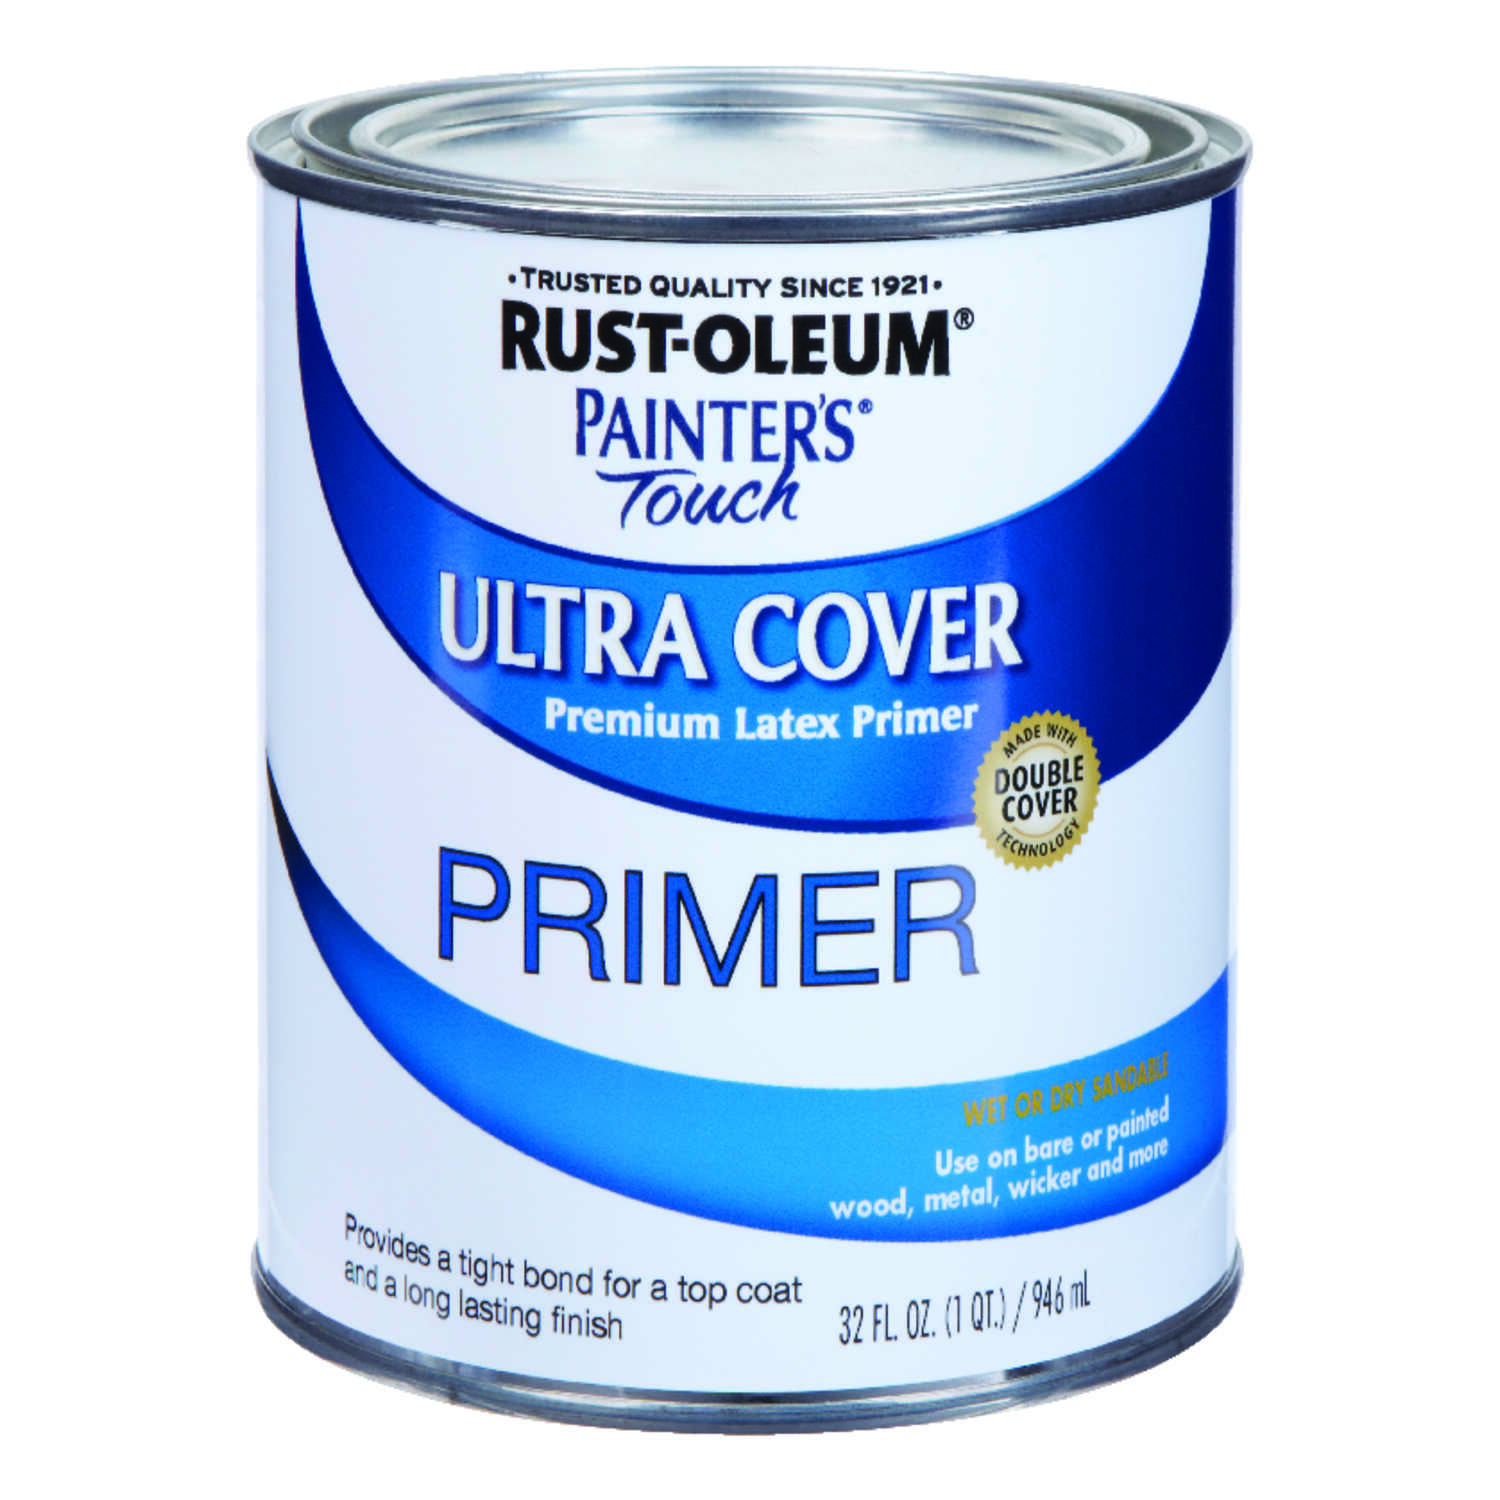 Rust-Oleum  Painters' Touch Ultra Cover  White  For All Surfaces 1 qt. Primer